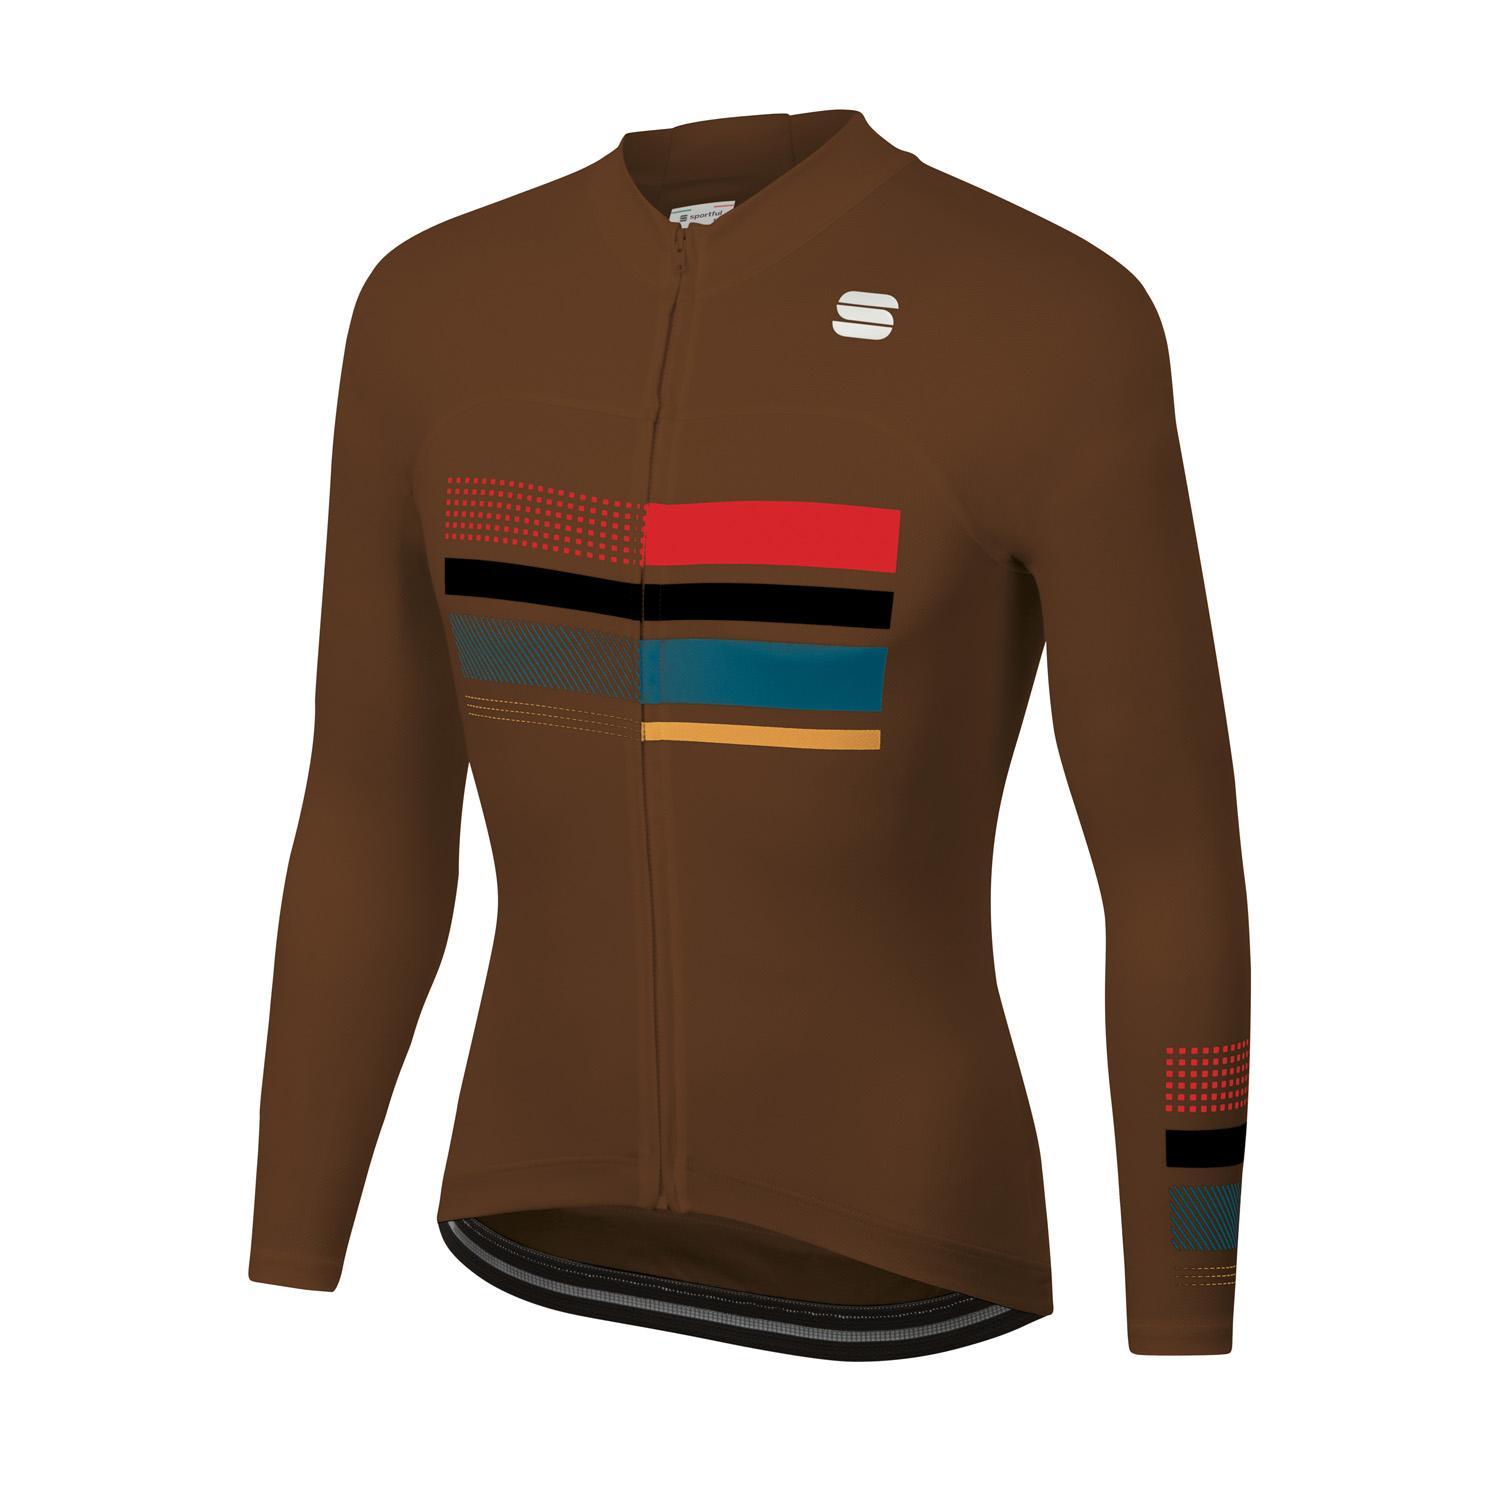 Sportful Fietsshirt lange mouwen Heren Bruin - WIRE THERMAL JERSEY CHOCOLATE